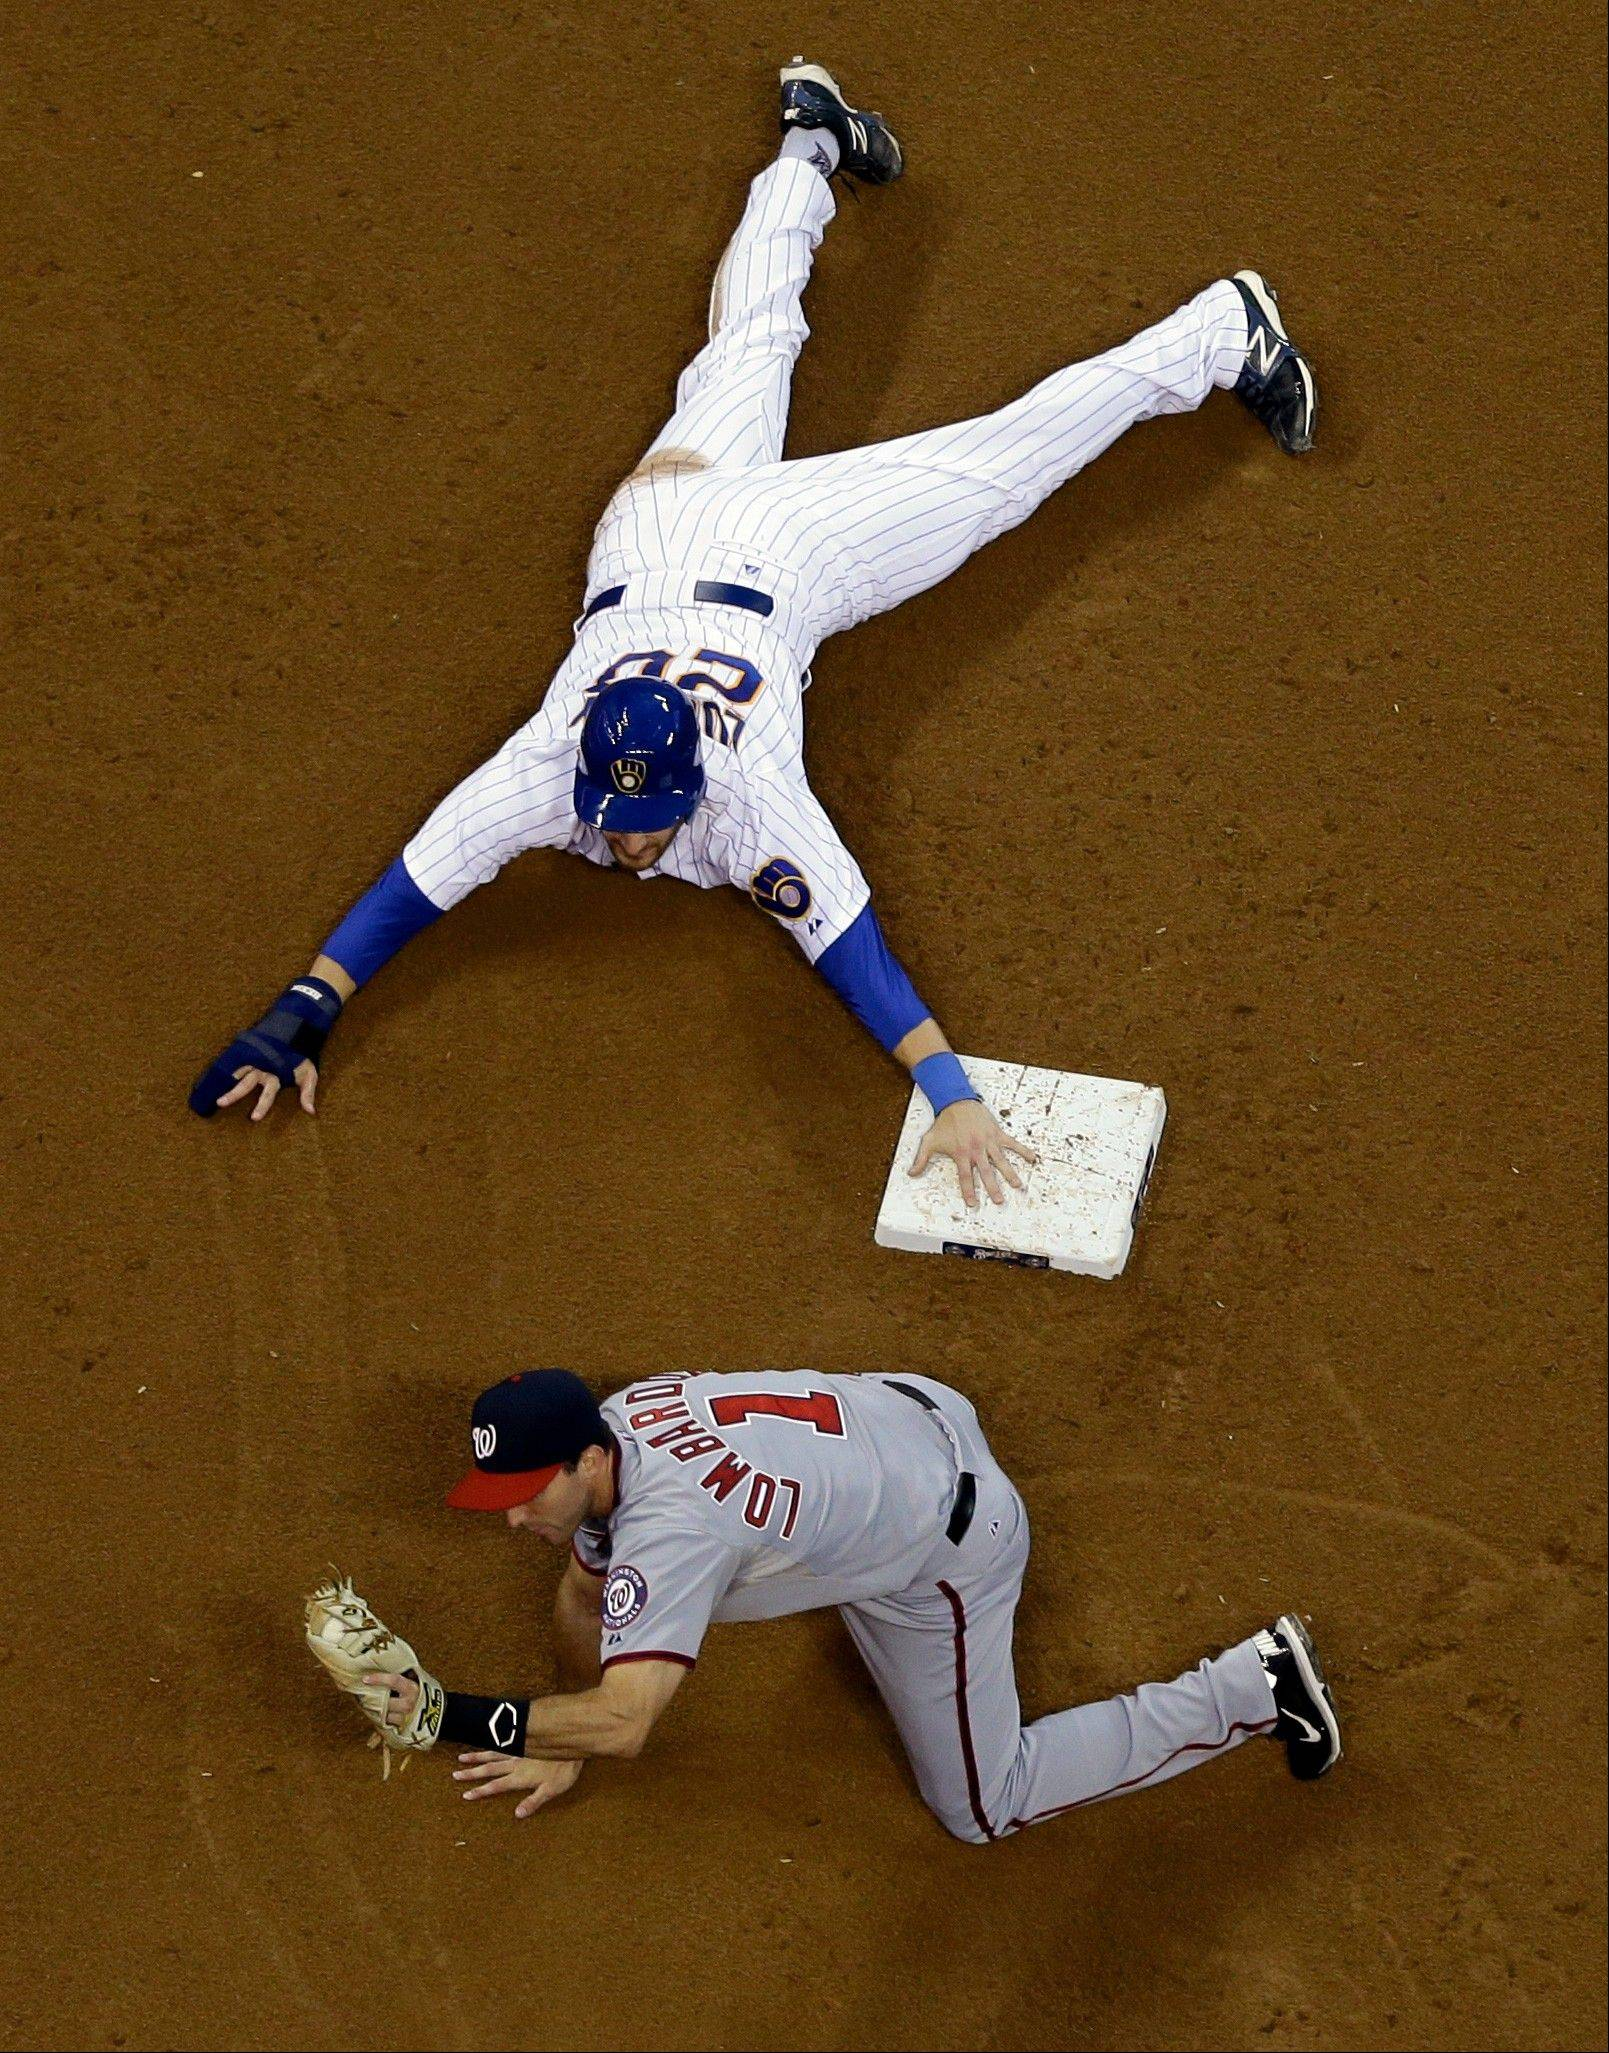 The Brewers' Jonathan Lucroy, top, was tagged out trying to steal second base by the Nationals' Steve Lombardozzi during the fourth inning Friday in Milwaukee.